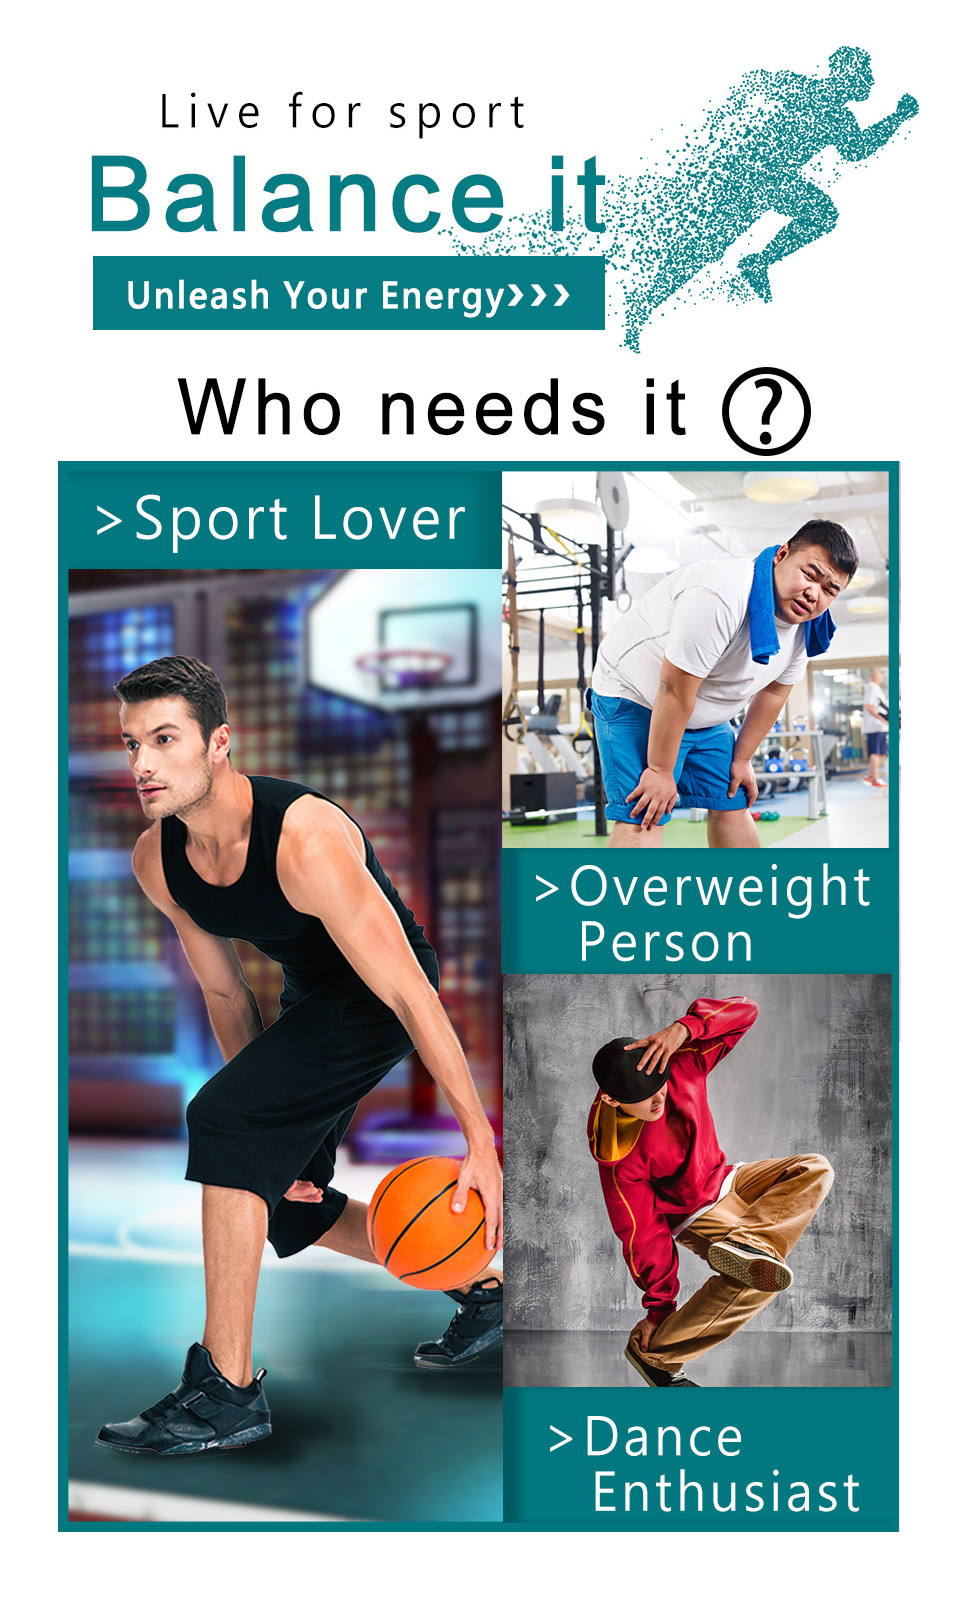 Recommend to sport lover, dance enthusiast and overweight person